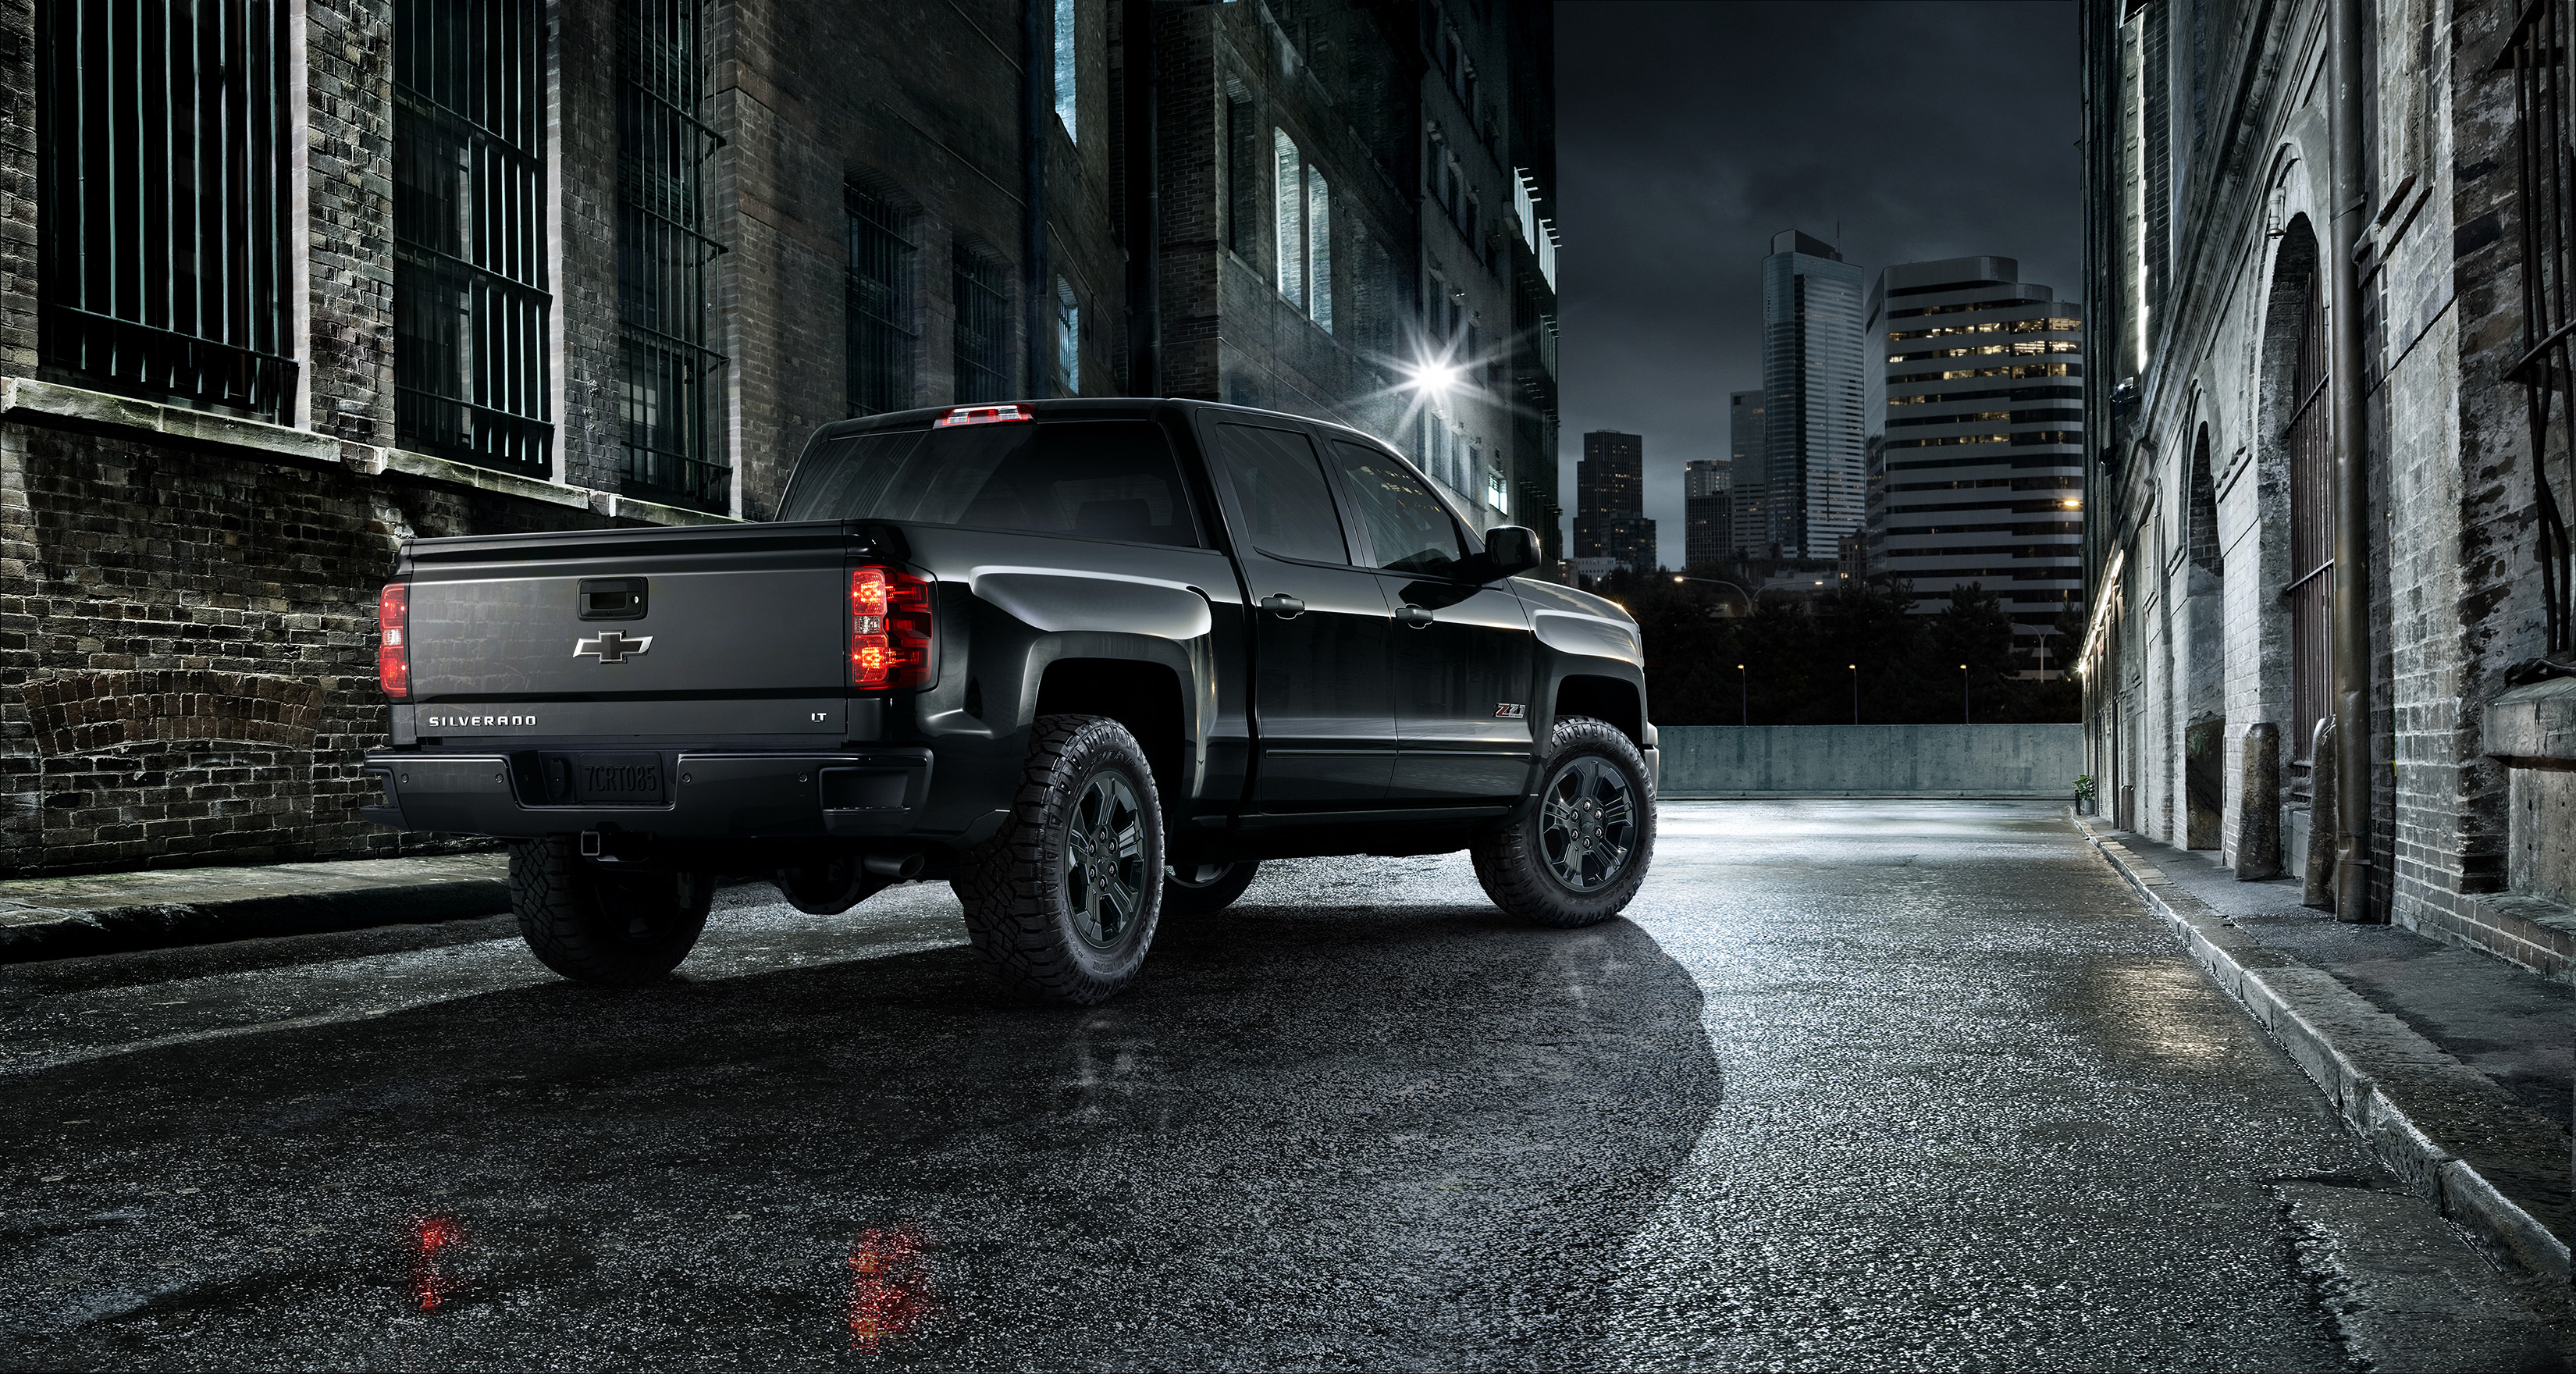 2015 Silverado Midnight Edition Is The New Black